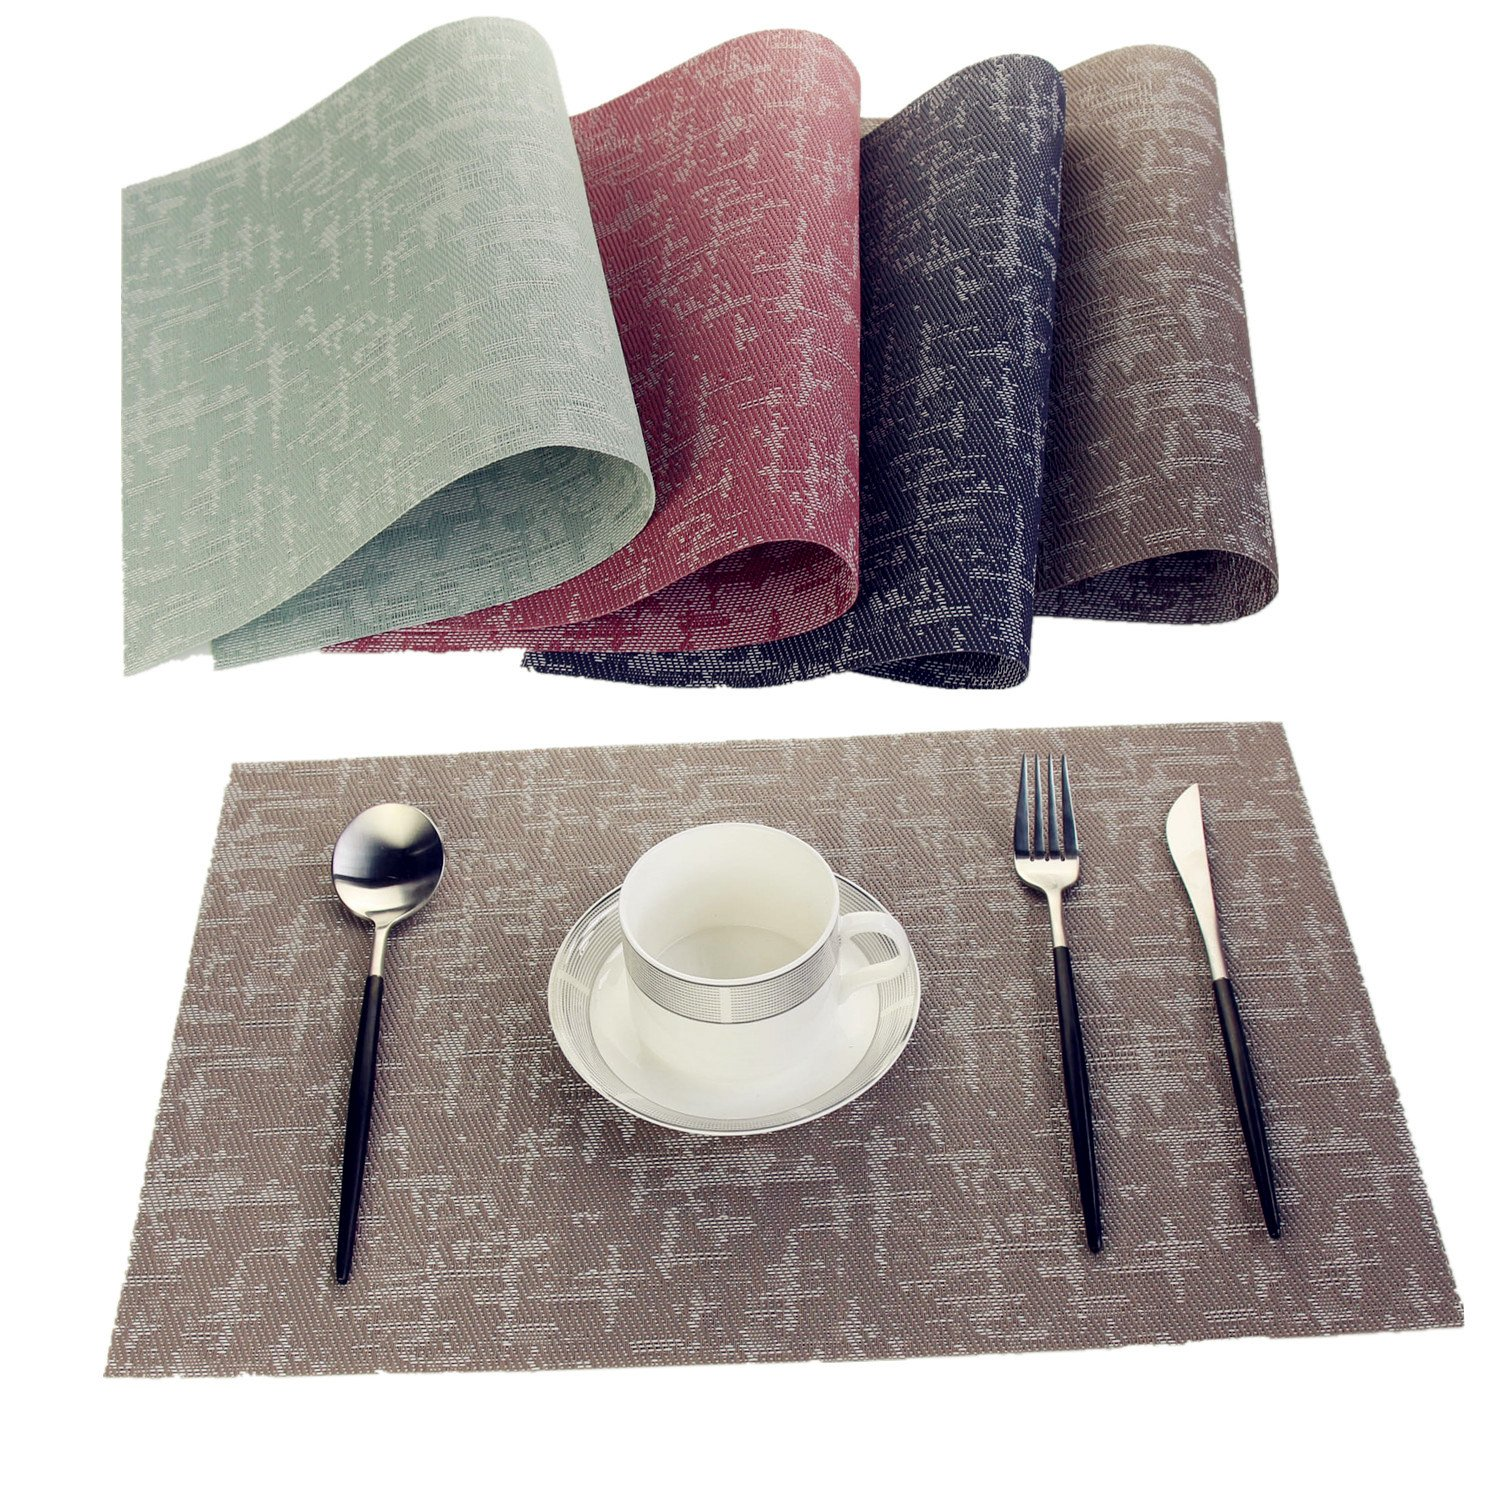 WANGCHAO Placemats, Heat-resistant Placemats Stain Resistant Anti-skid Washable PVC Table Mats Woven Vinyl Placemats (black gold, set of 4) wuyixiangju